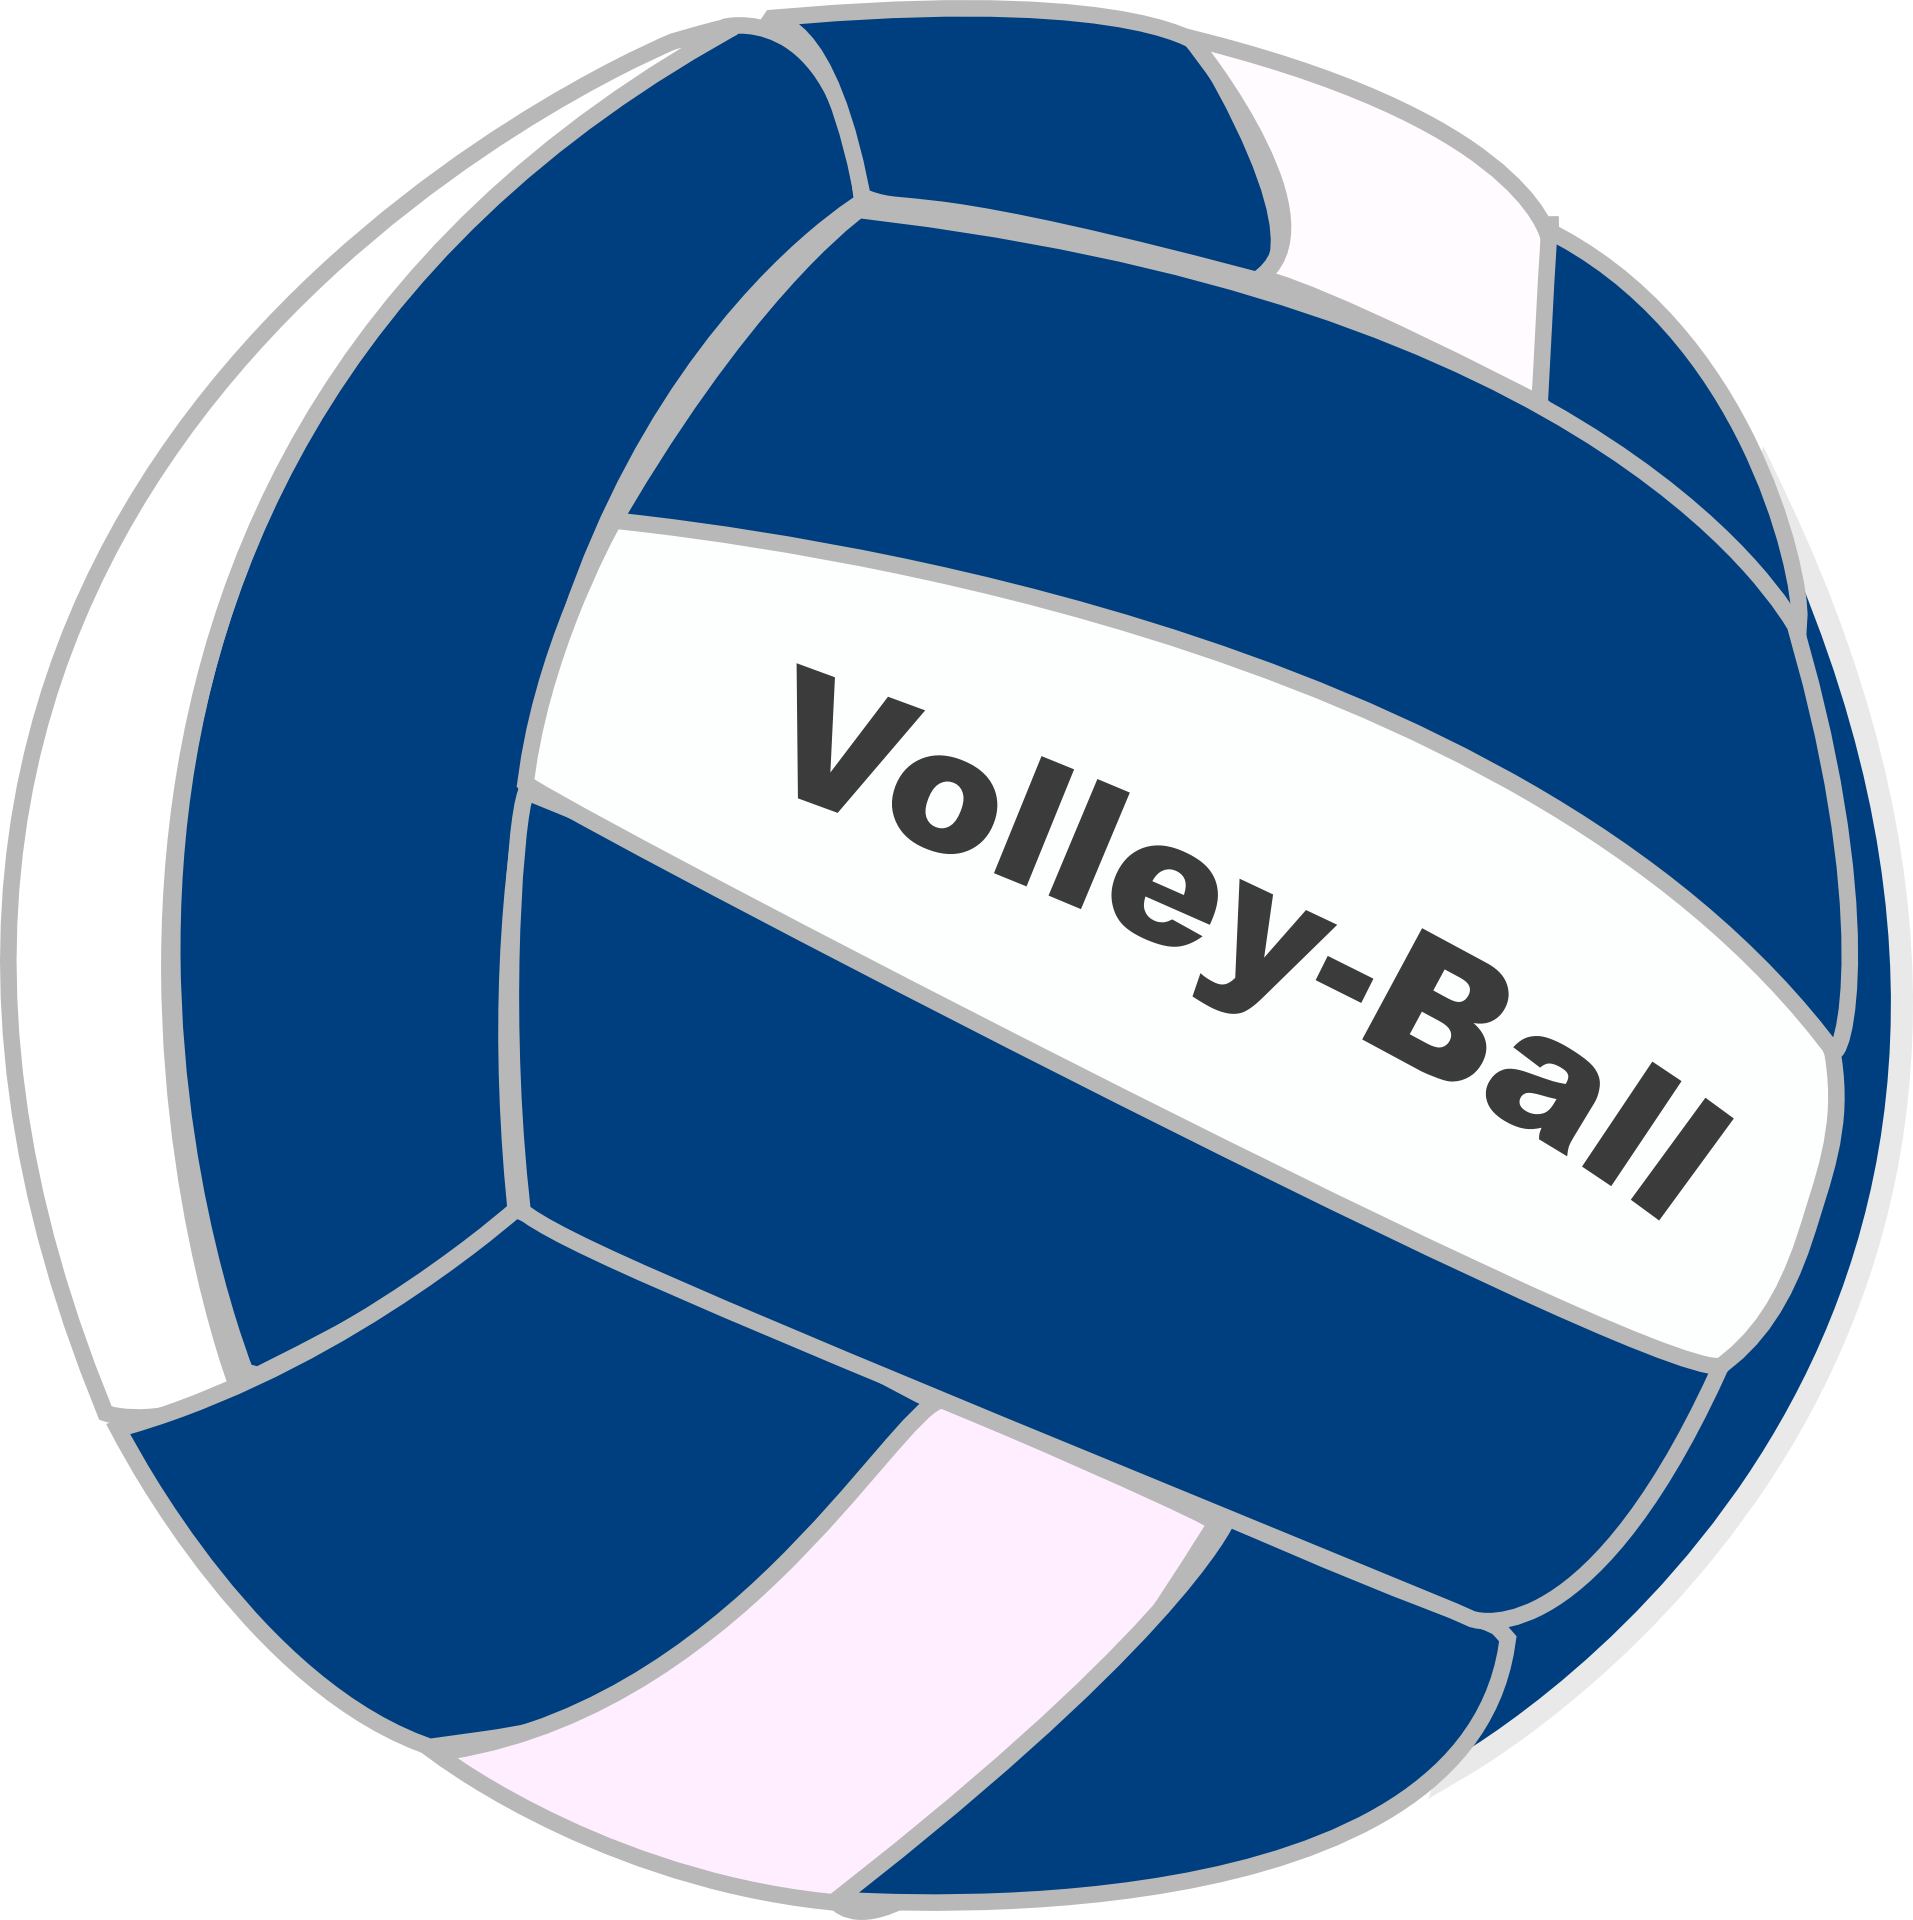 Volleyball With Blue White Stripes Drawing Free Image